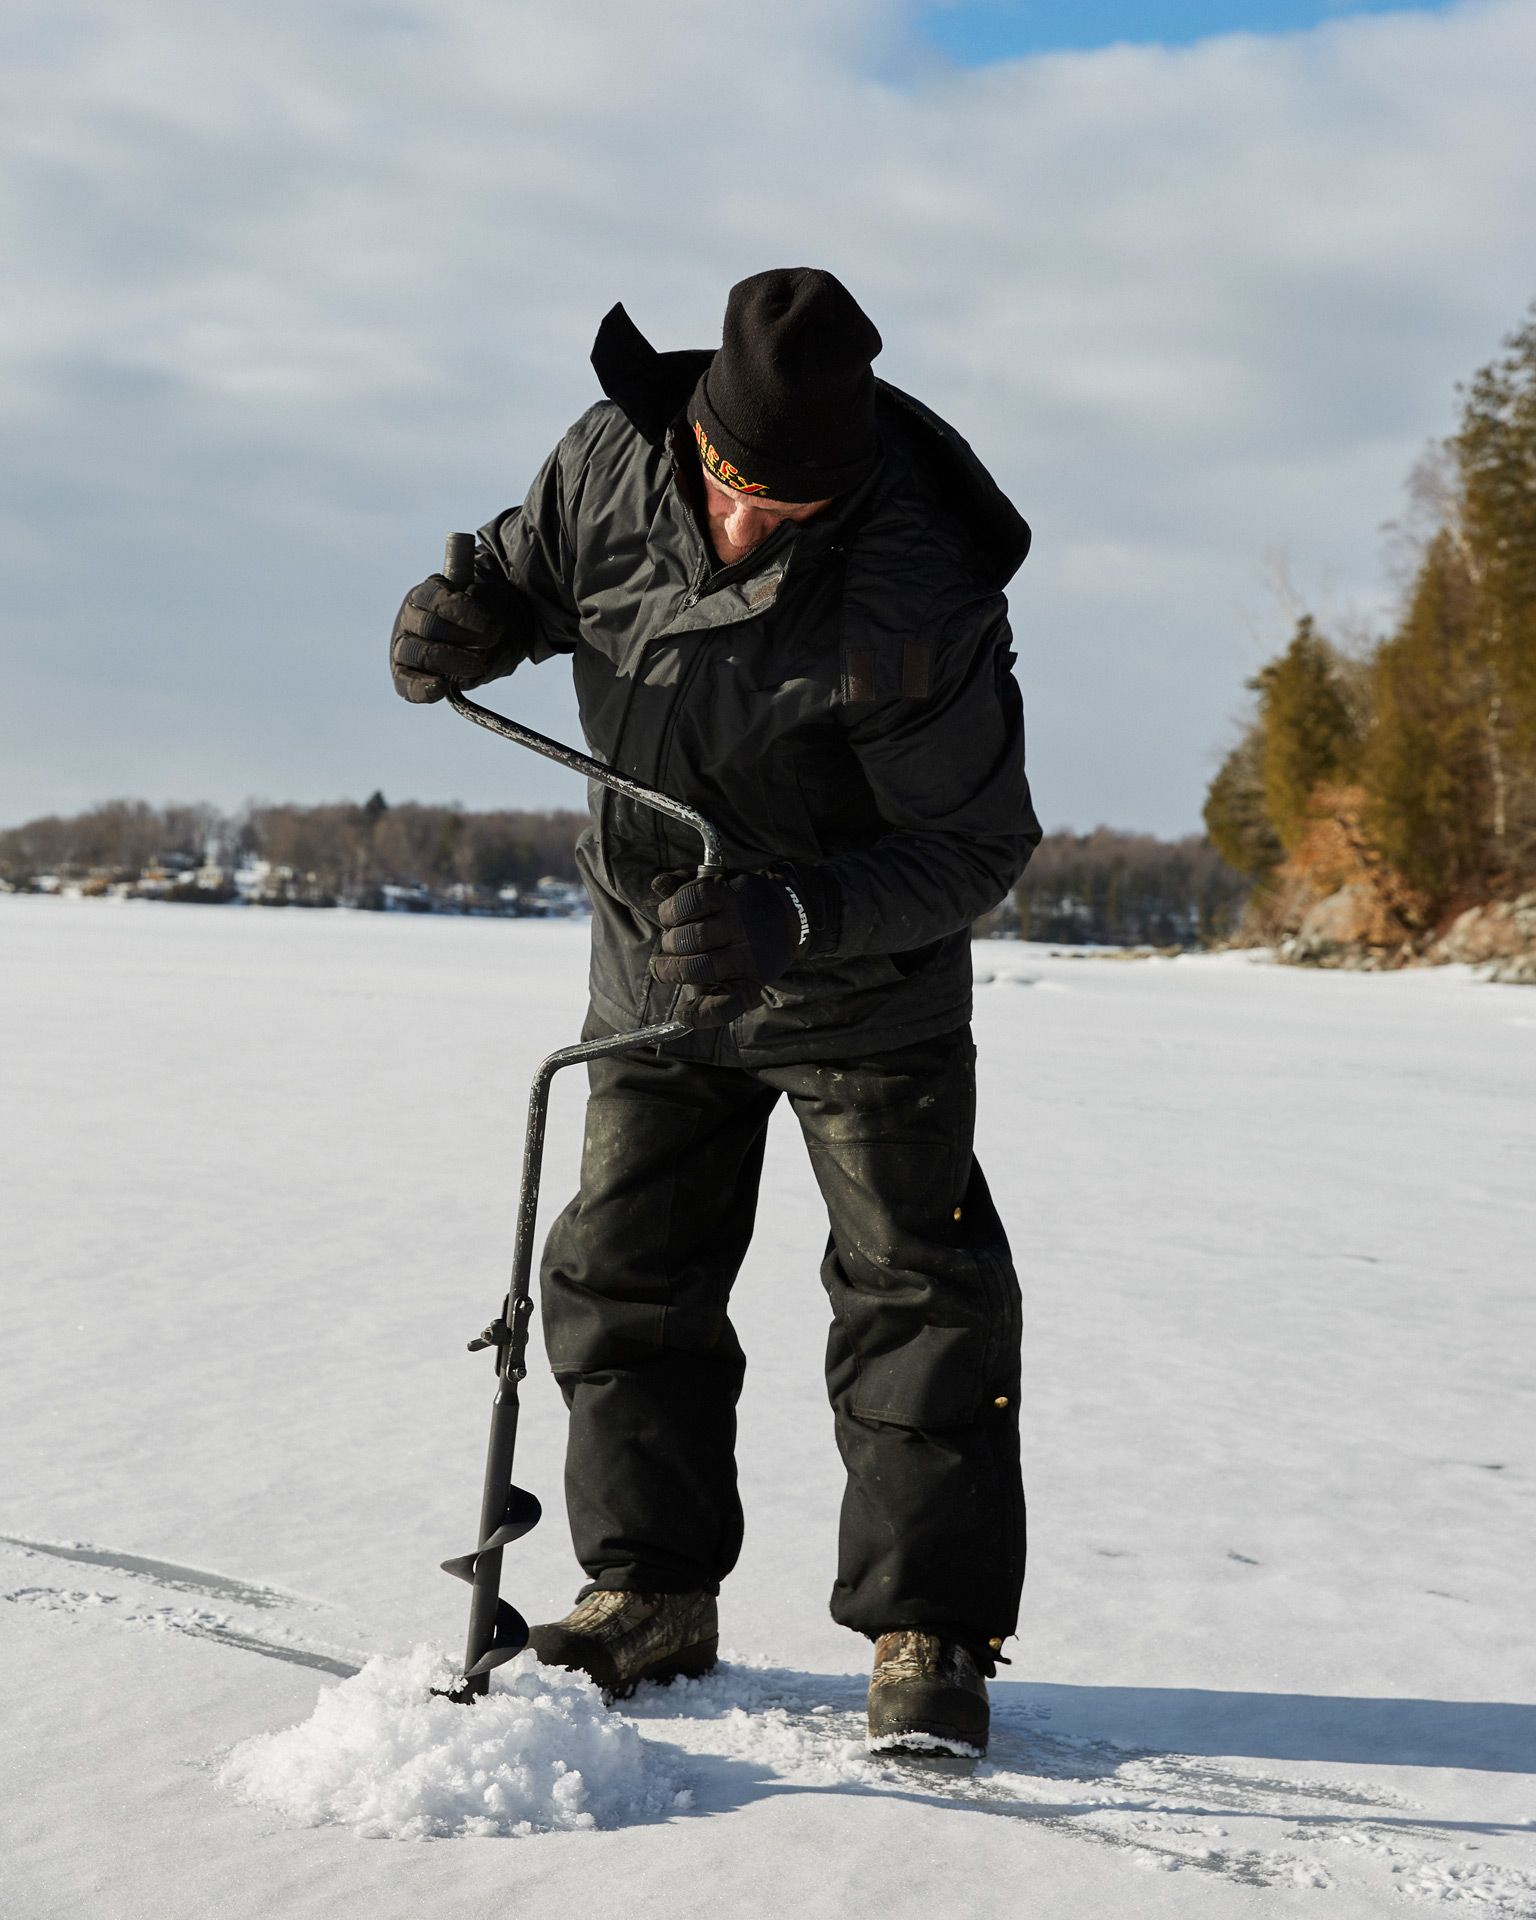 fisherman making hole in a frozen lake by Oumayma B Tanfous for short film Popper Fly